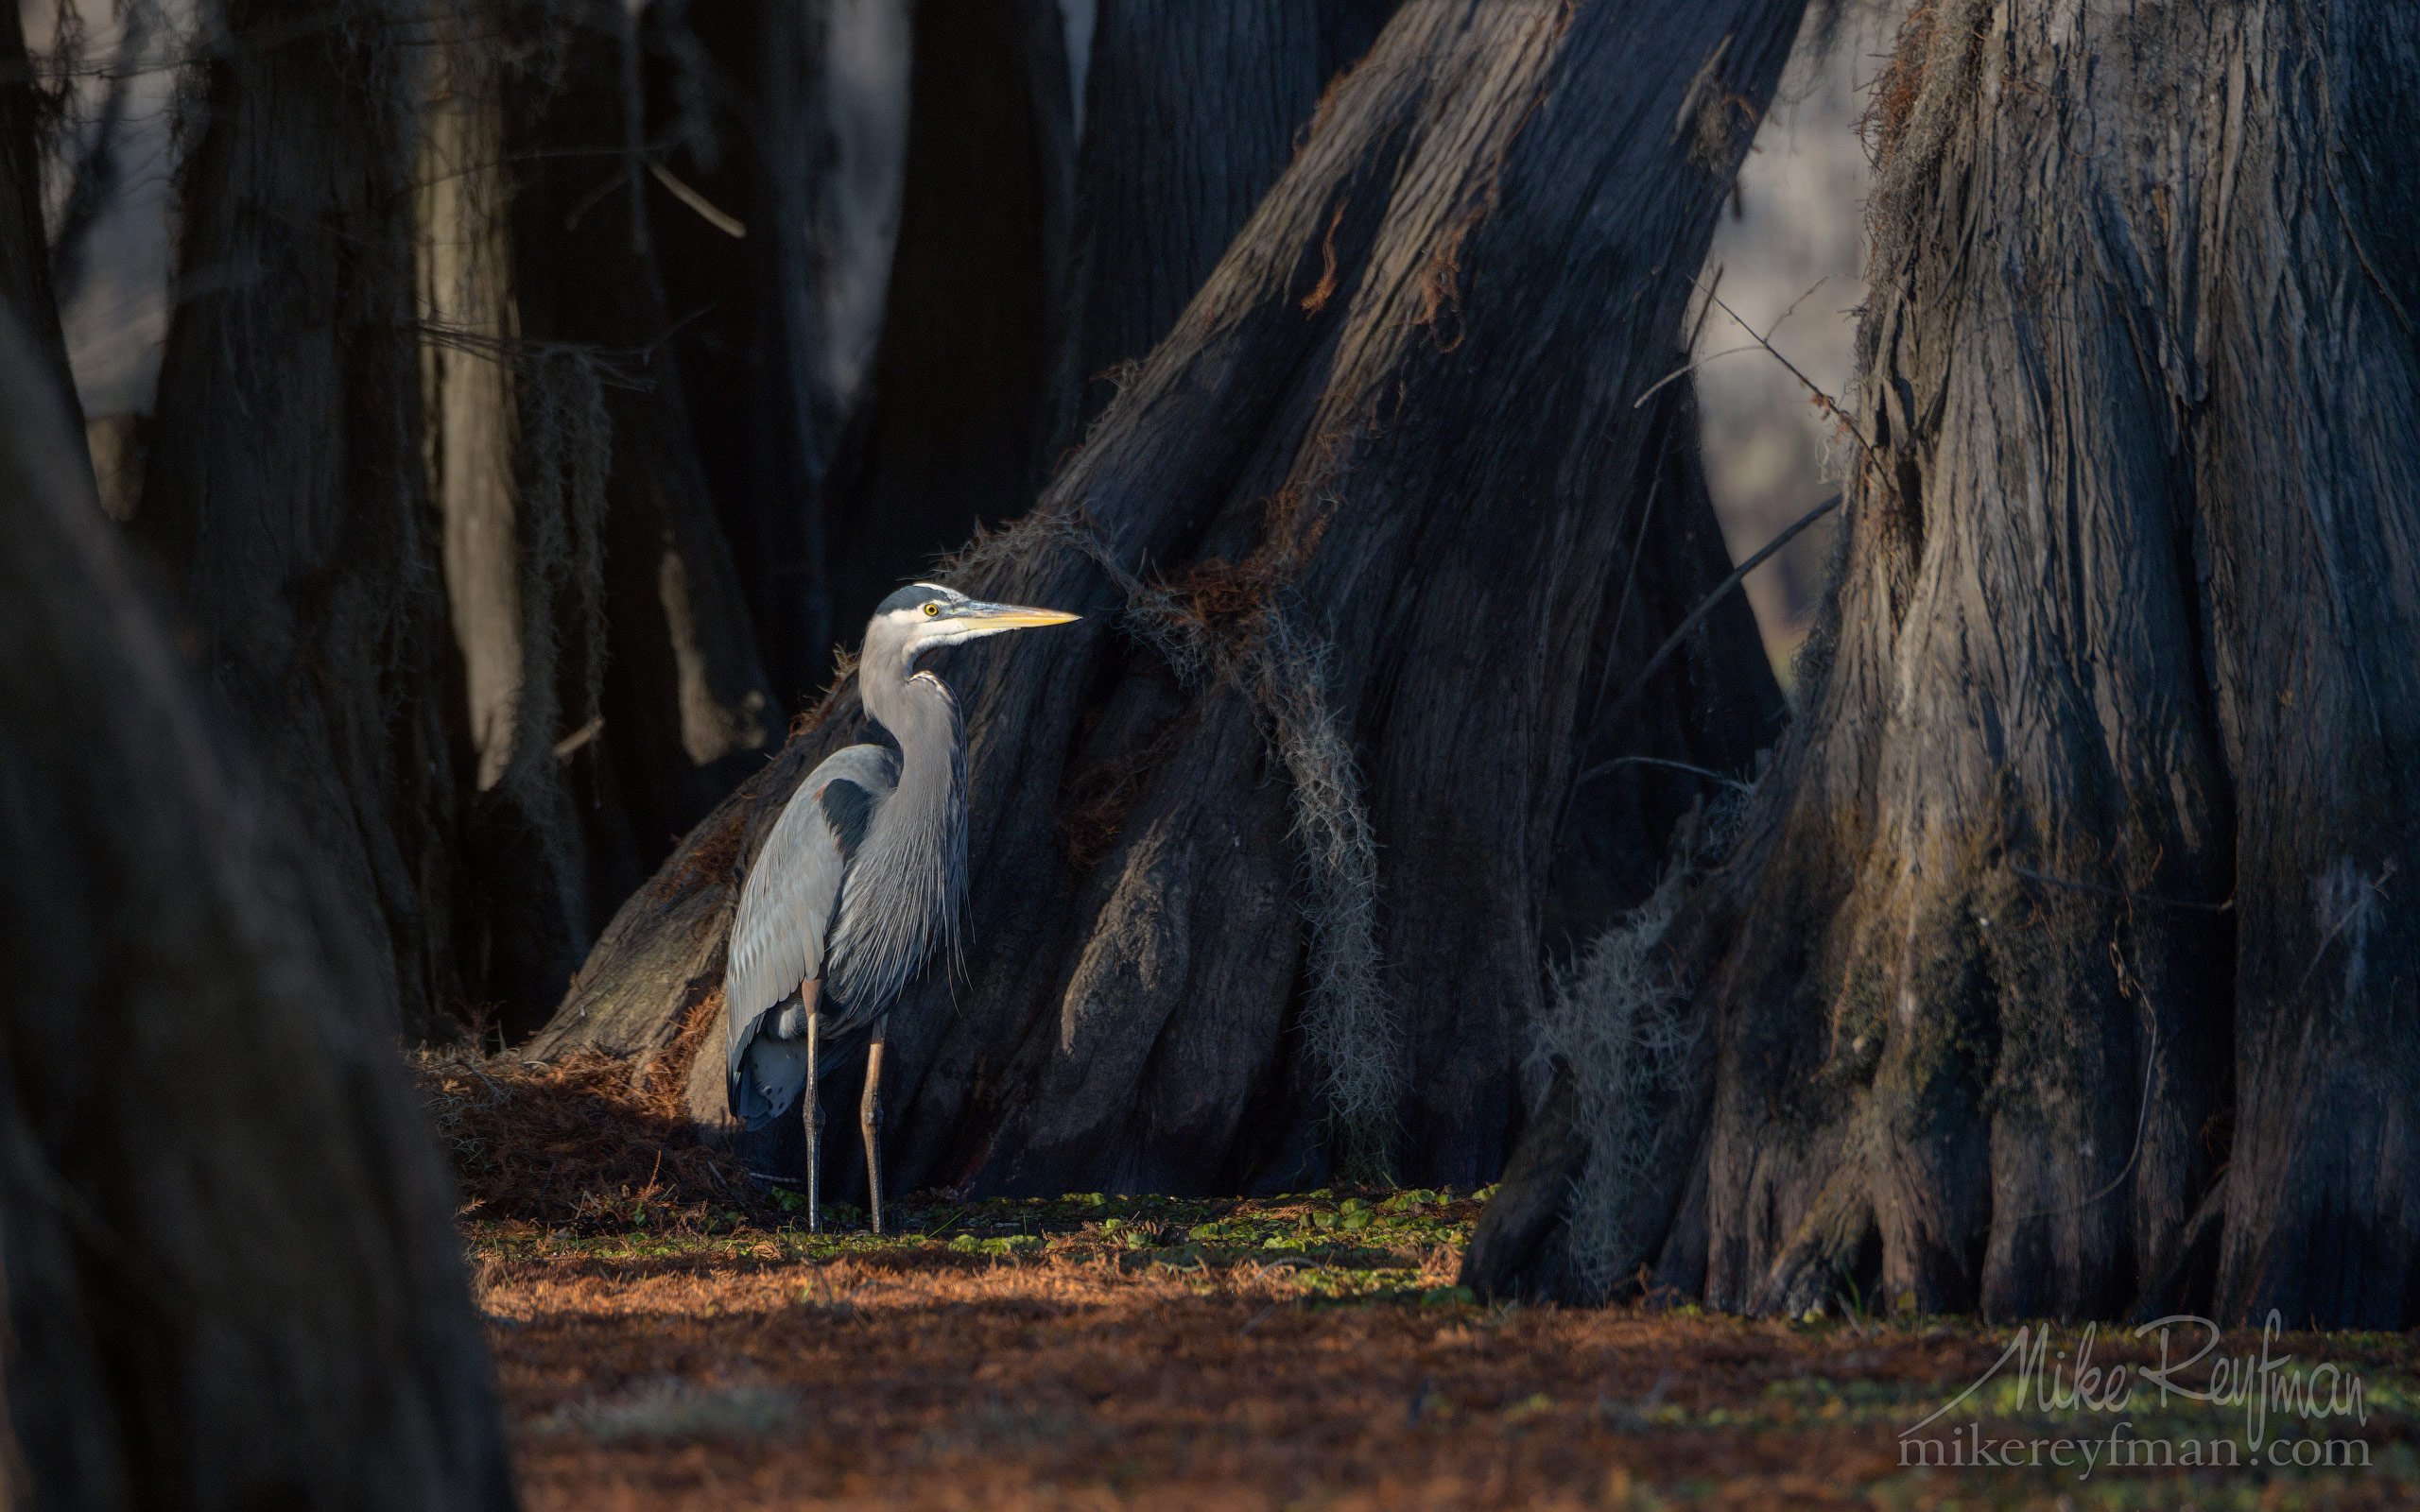 Great Blue Heron with the buttressed trunks of Bald Cypress trees on the background. Caddo Lake, Texas, US 062-LT1-50A4036.jpg - Bold Cypress and Tupelo Trees in the swamps of Atchafalaya River Basin. Caddo, Martin and Fousse Lakes. Texas/Louisiana, USA. - Mike Reyfman Photography